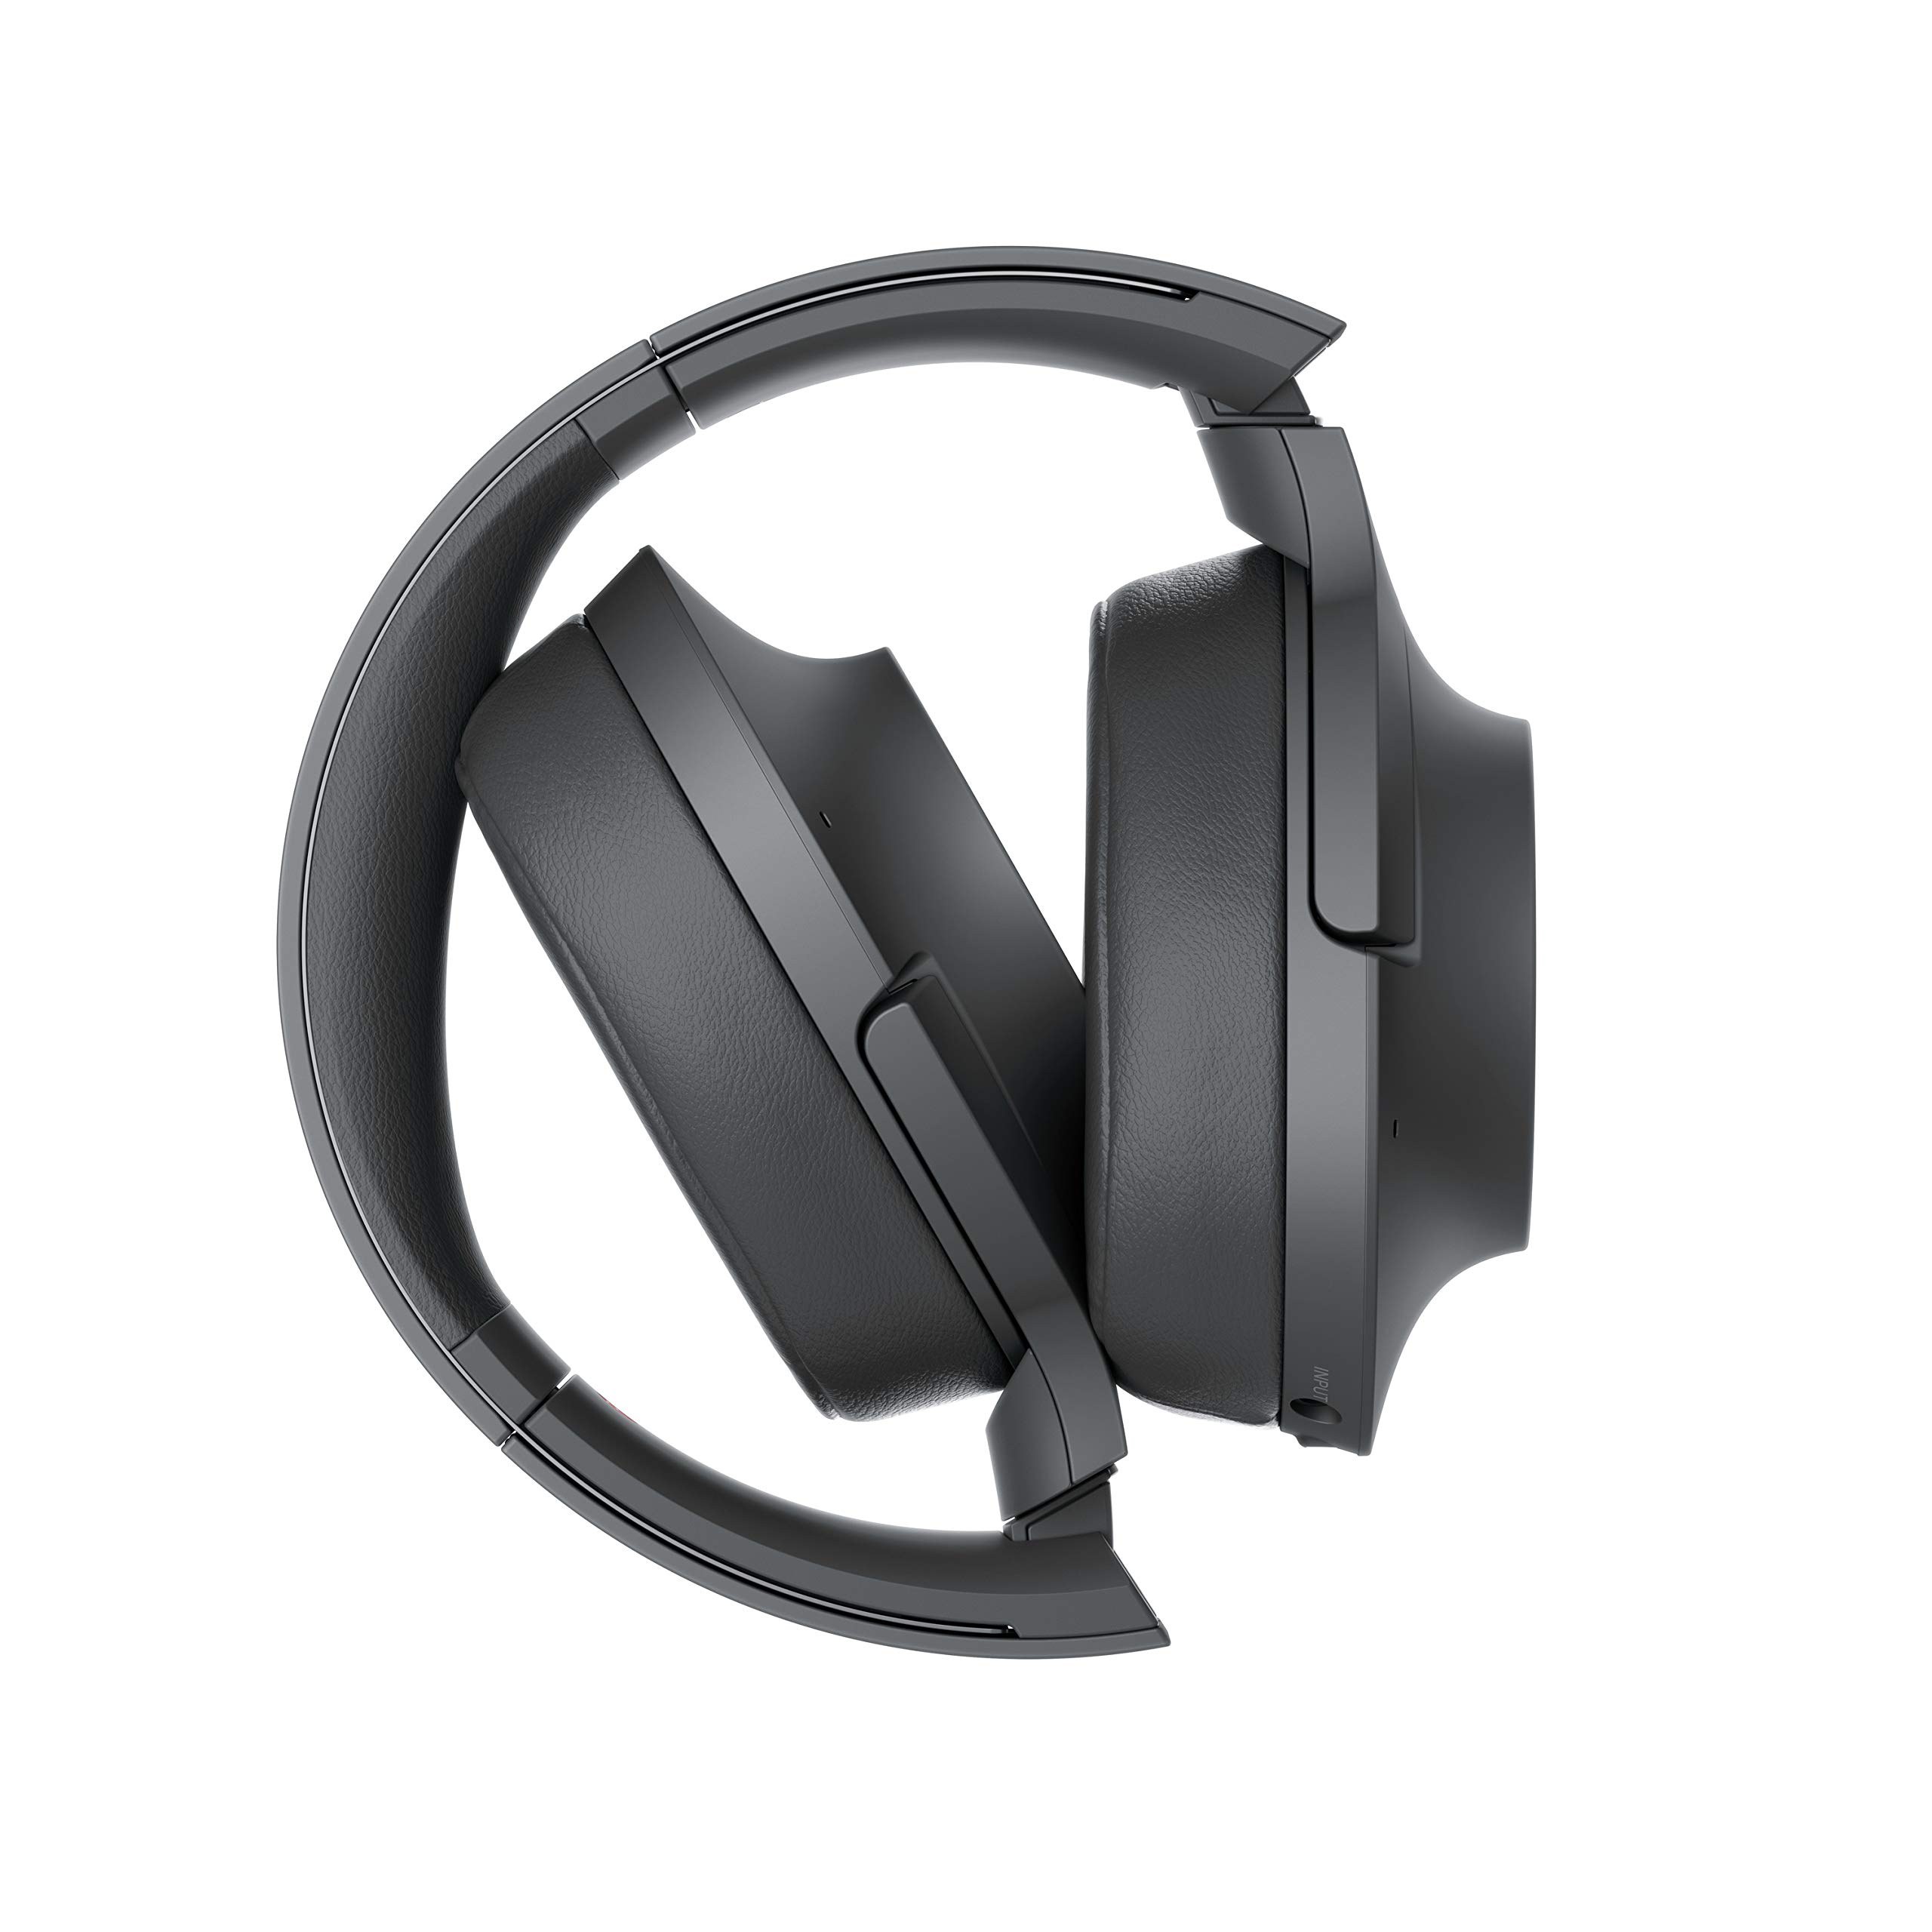 Sony Sony whh900n hear on 2 wireless overear noise cancelling high resolution headphones, 2.4 Ounce by Sony (Image #4)